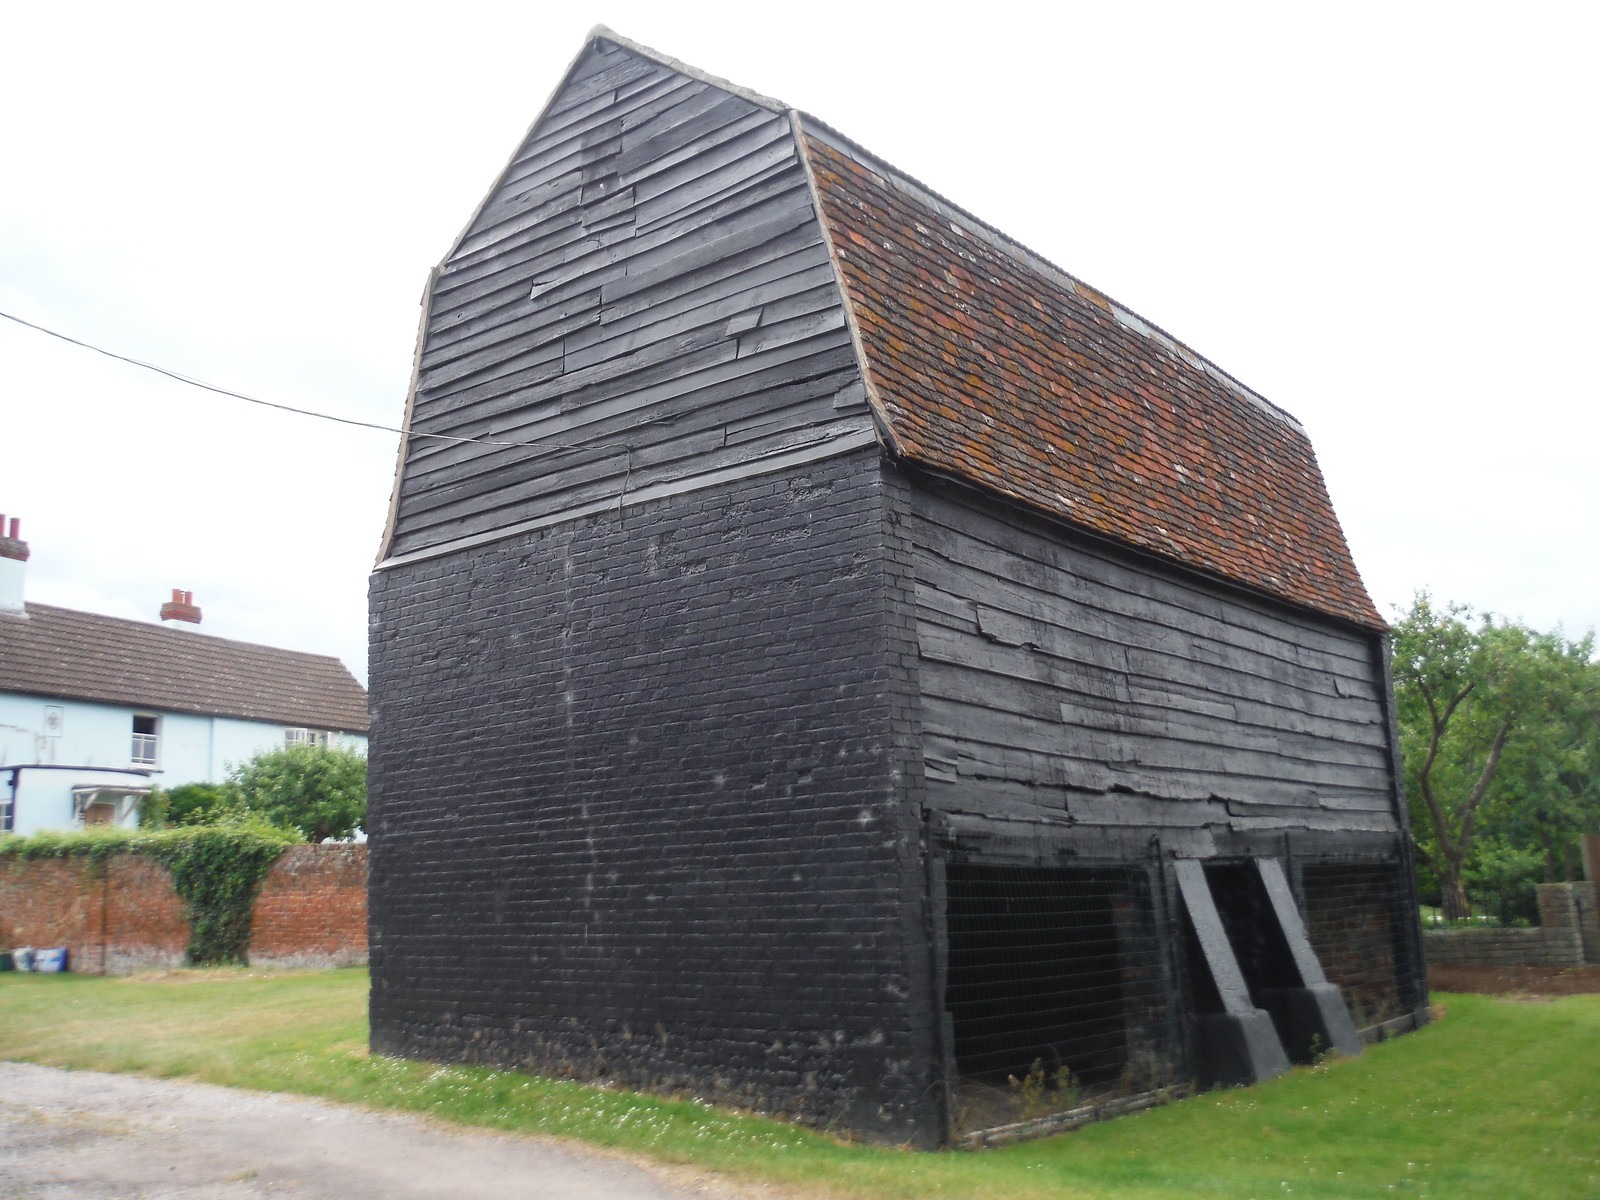 Old Barn, Sawbridgeworth SWC Walk 210 - Sawbridgeworth to Bishop's Stortfort (via Henry Moore Foundation)